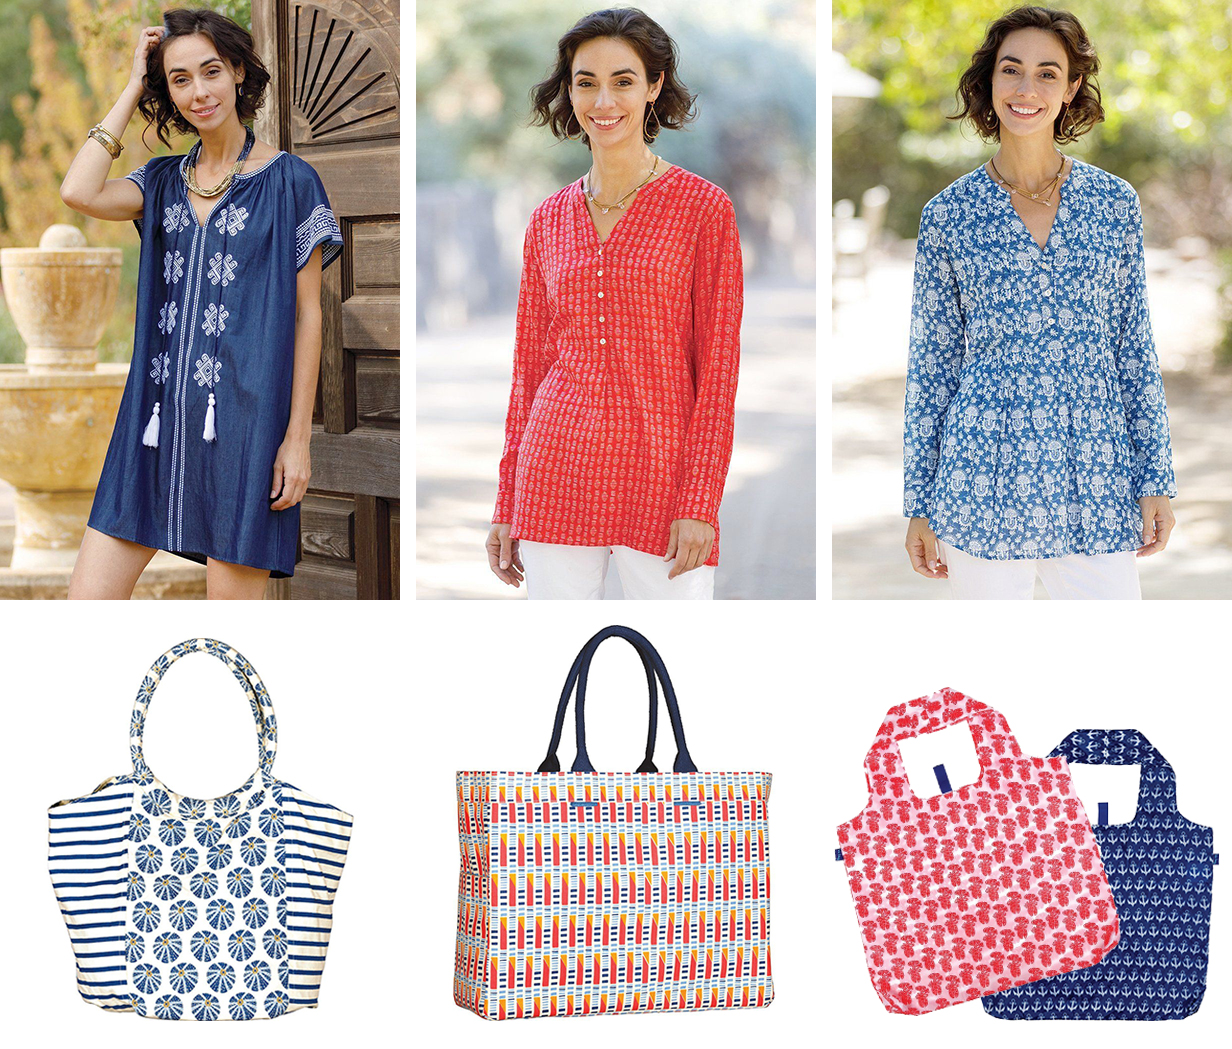 collage of casual outfits - denim dress and bucket bag, red tunic with carryall tote bag, blue pintuck tunic with reusable shopping bags